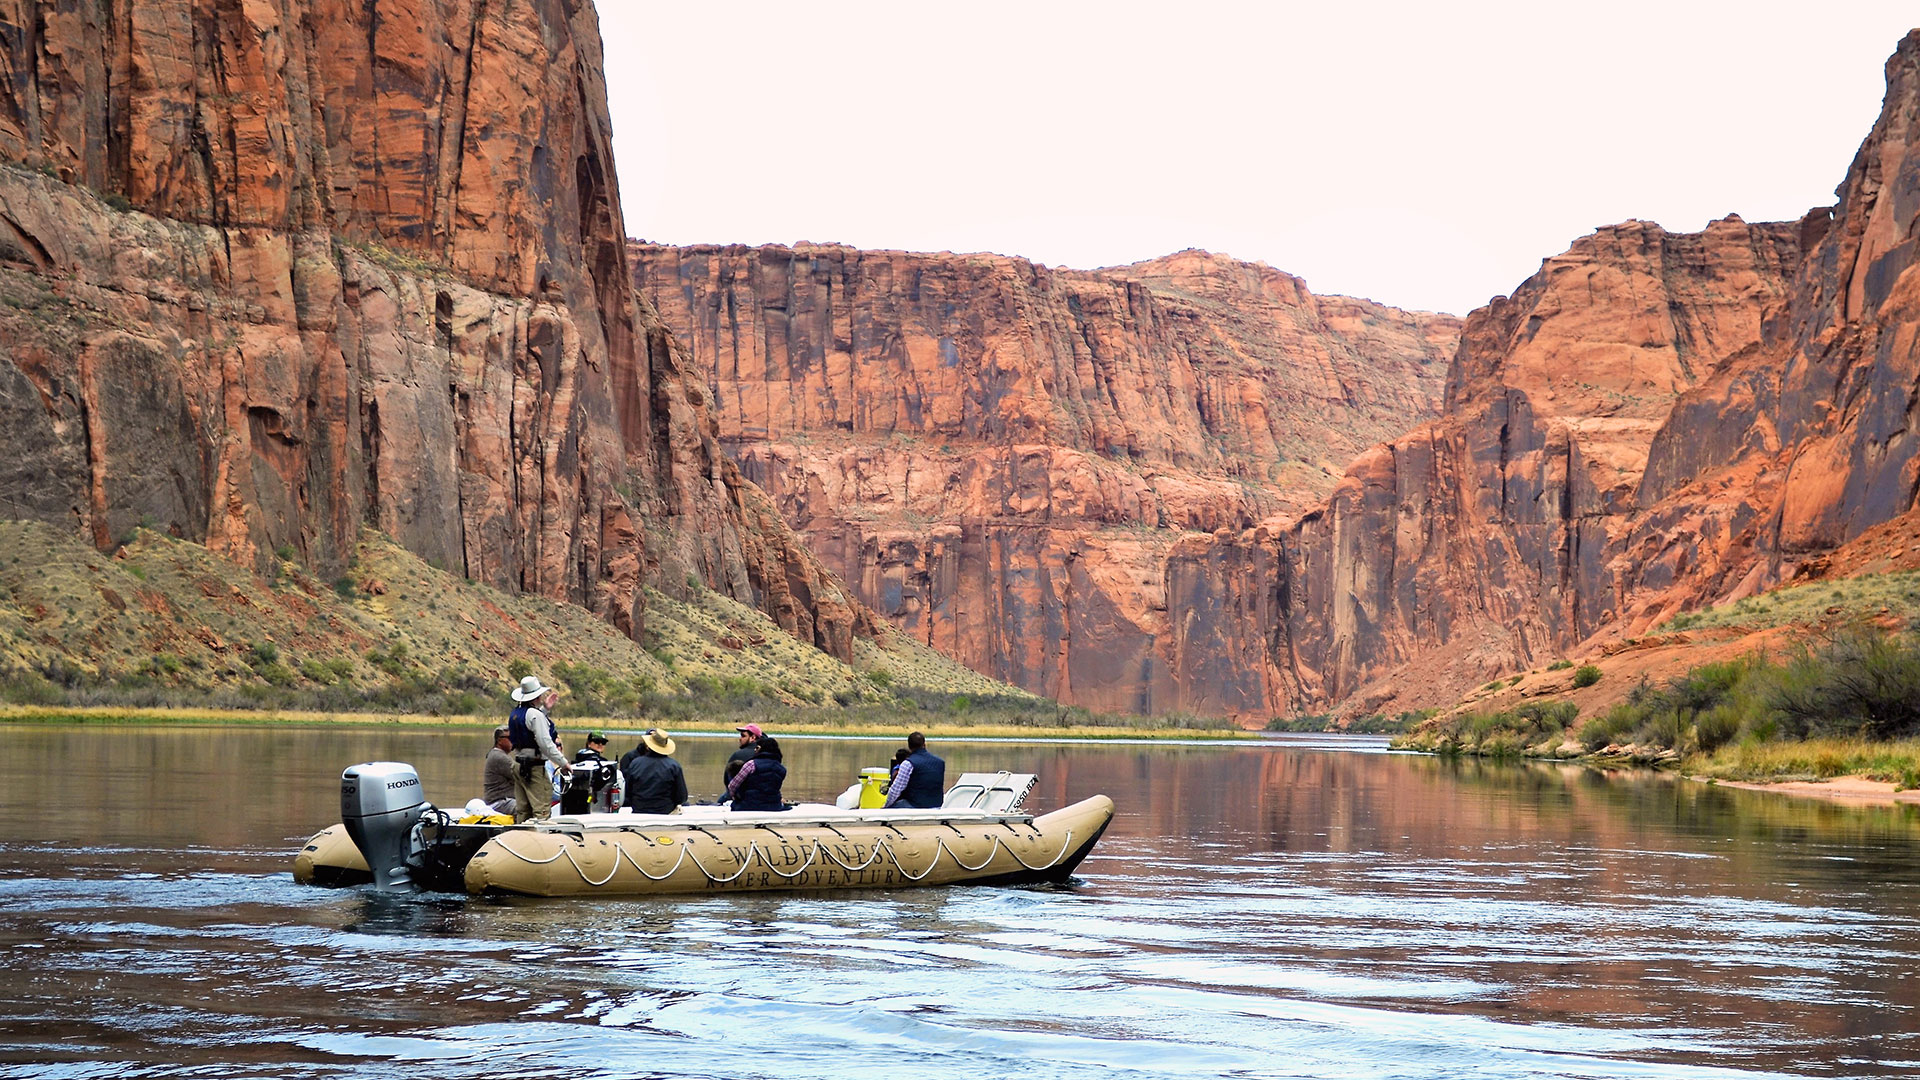 Passengers aboard a large raft float down the Colorado River.